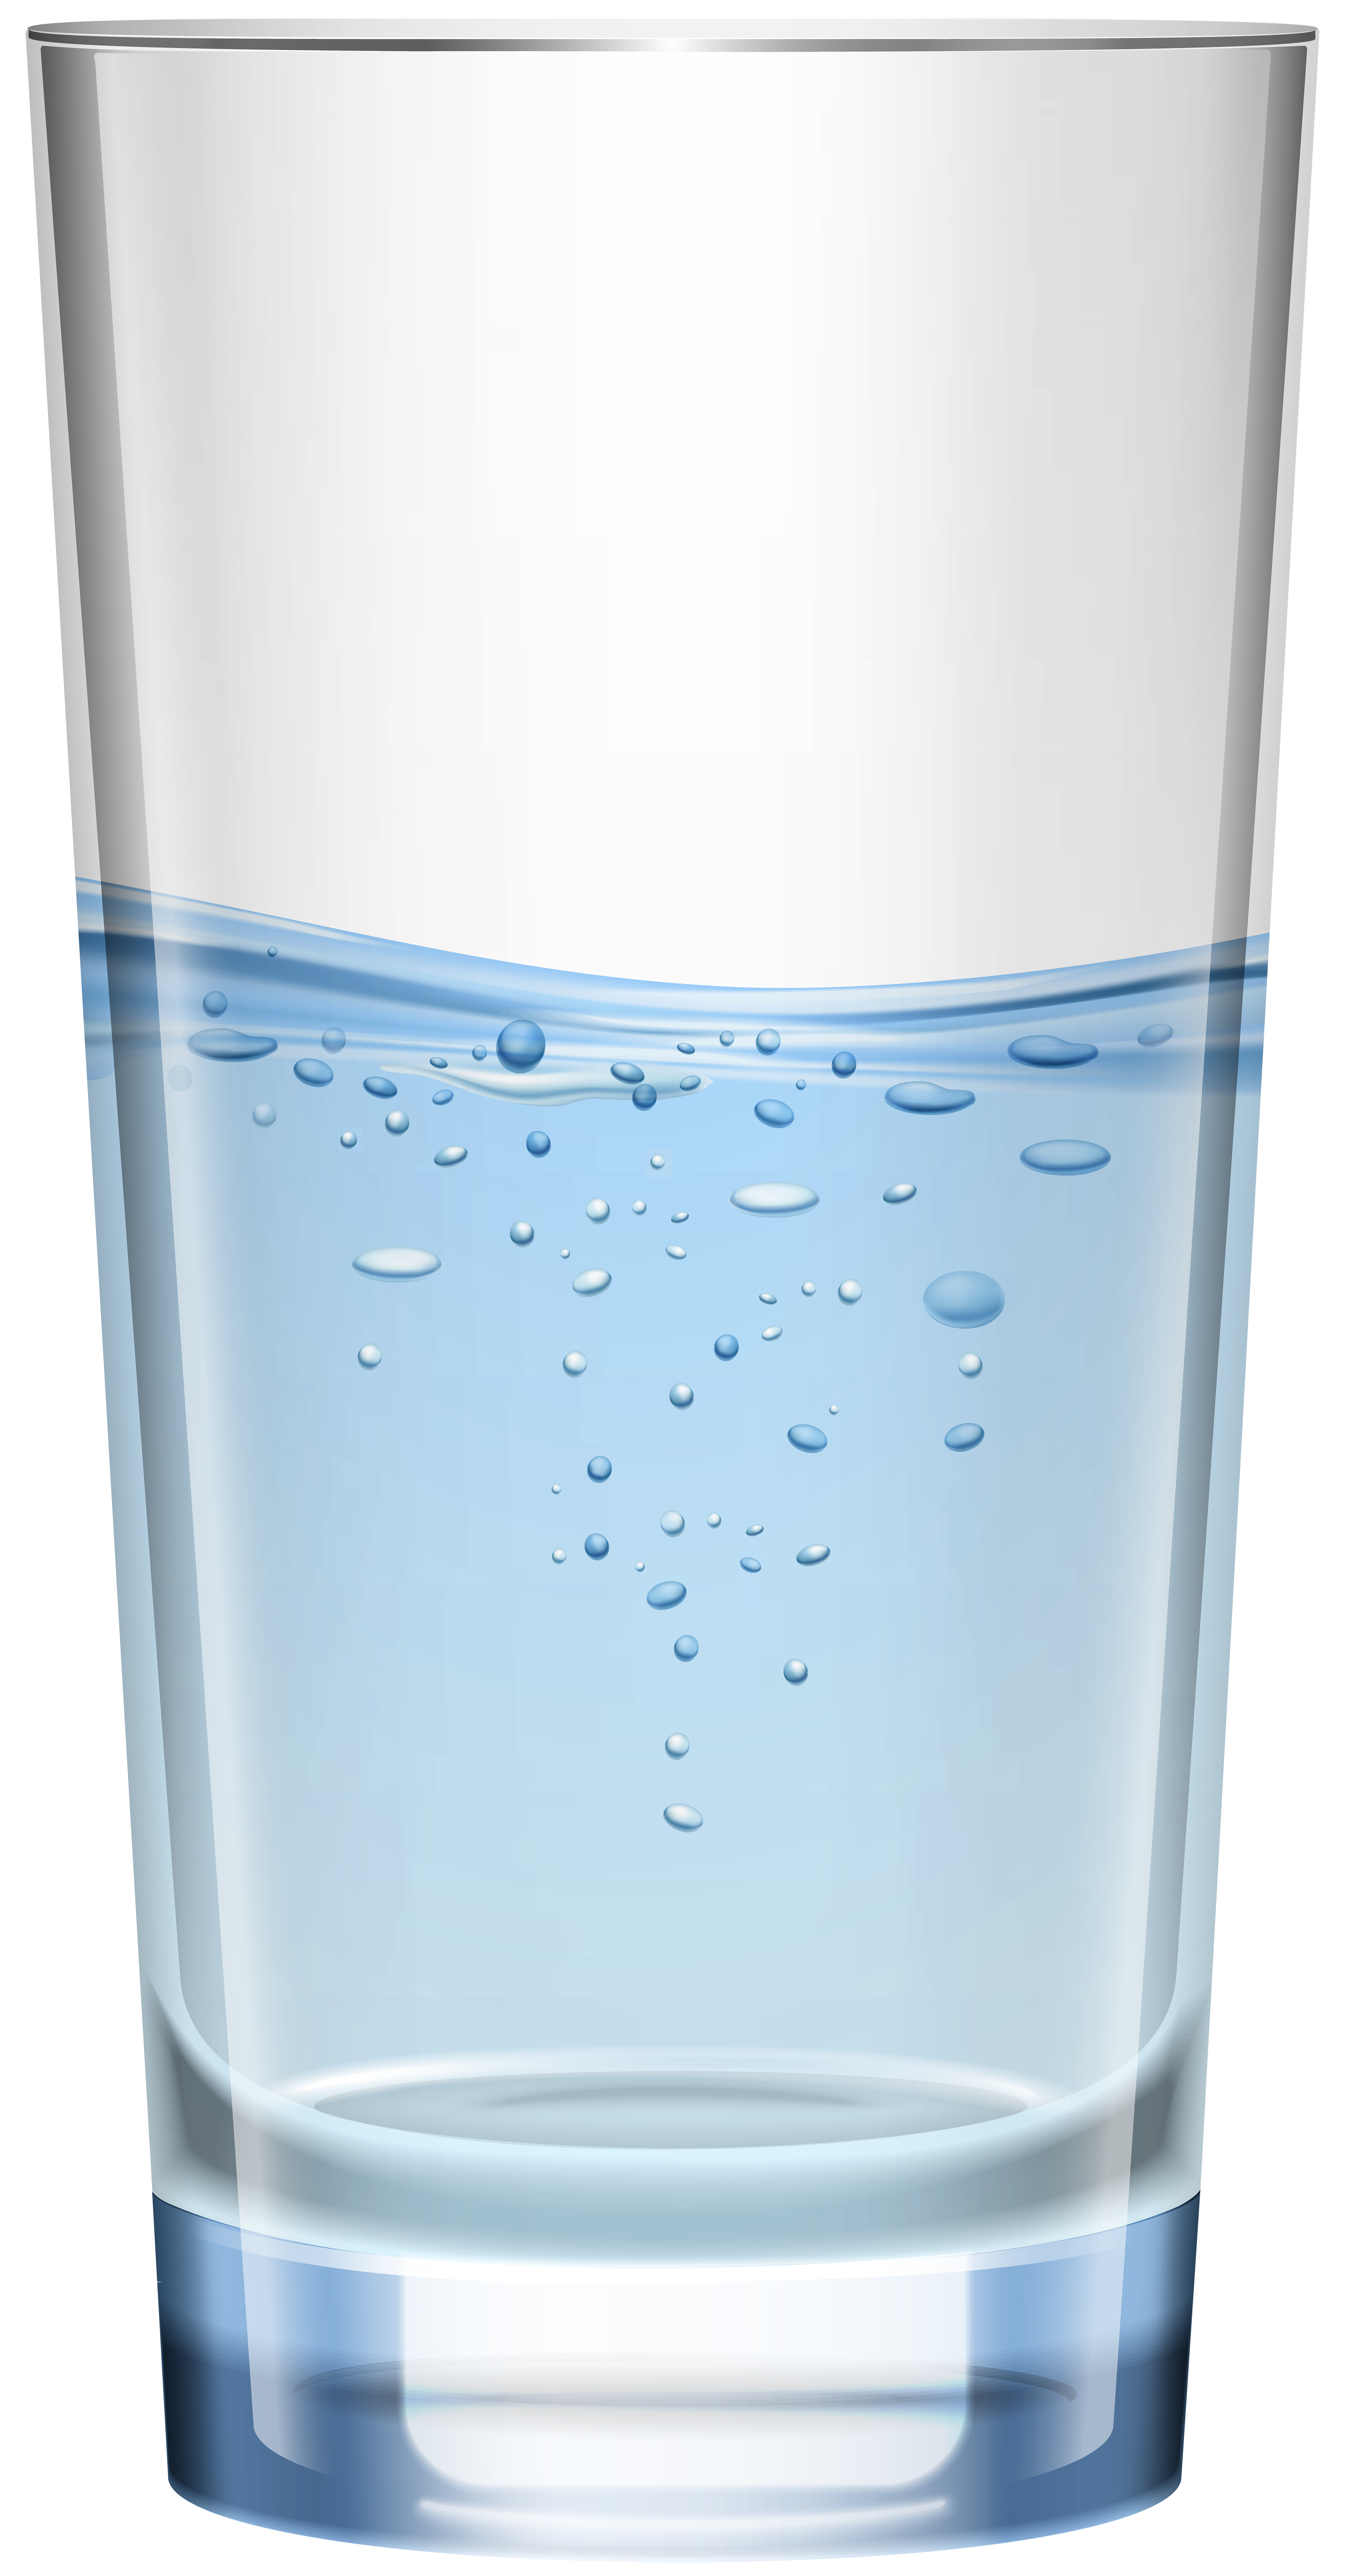 Scalable vector graphics icon. Cup clipart ice water